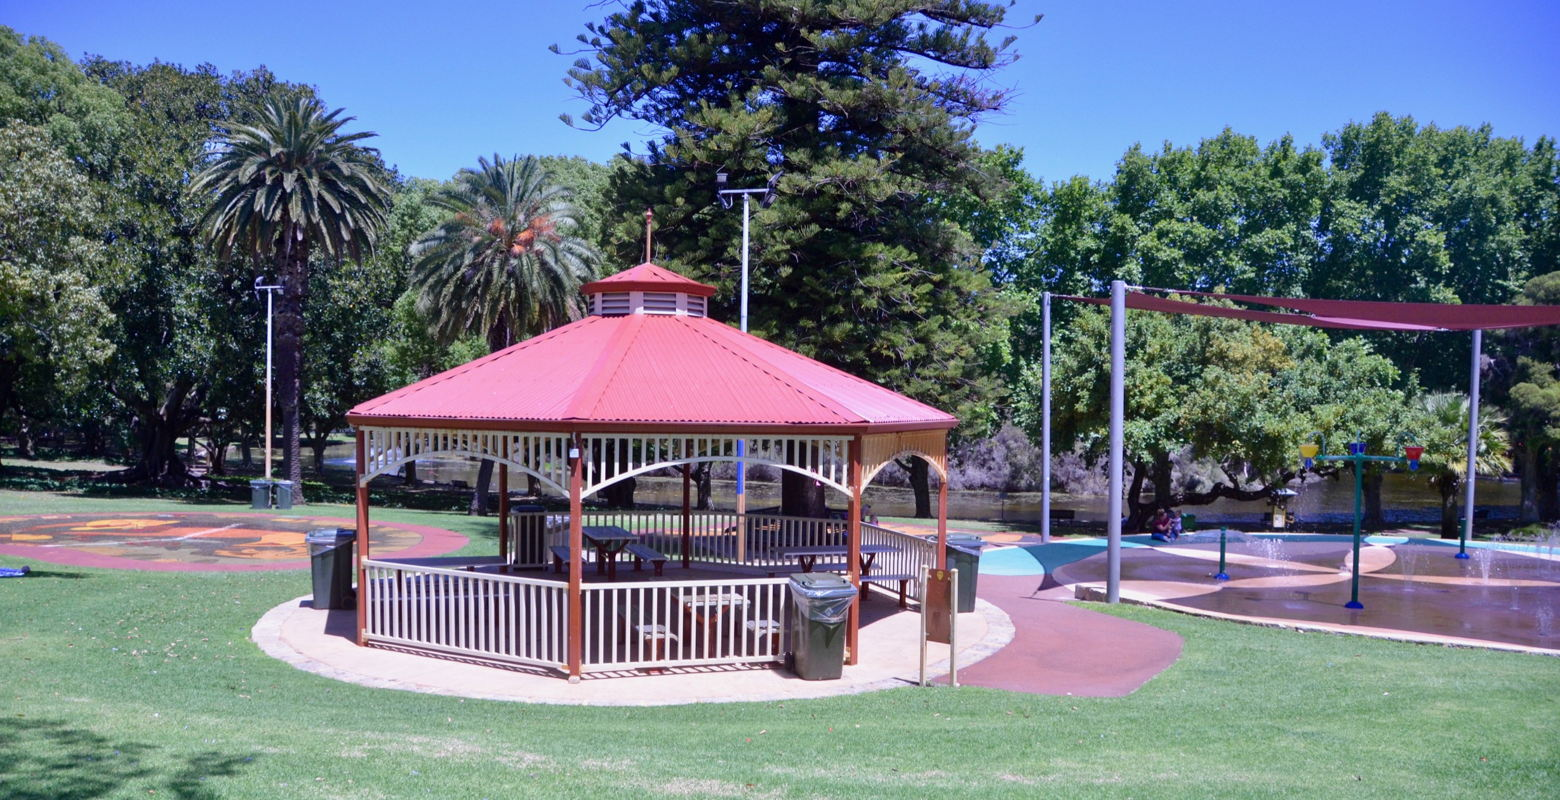 Kids Parties Perth Wa Find Your Perfect Birthday Location